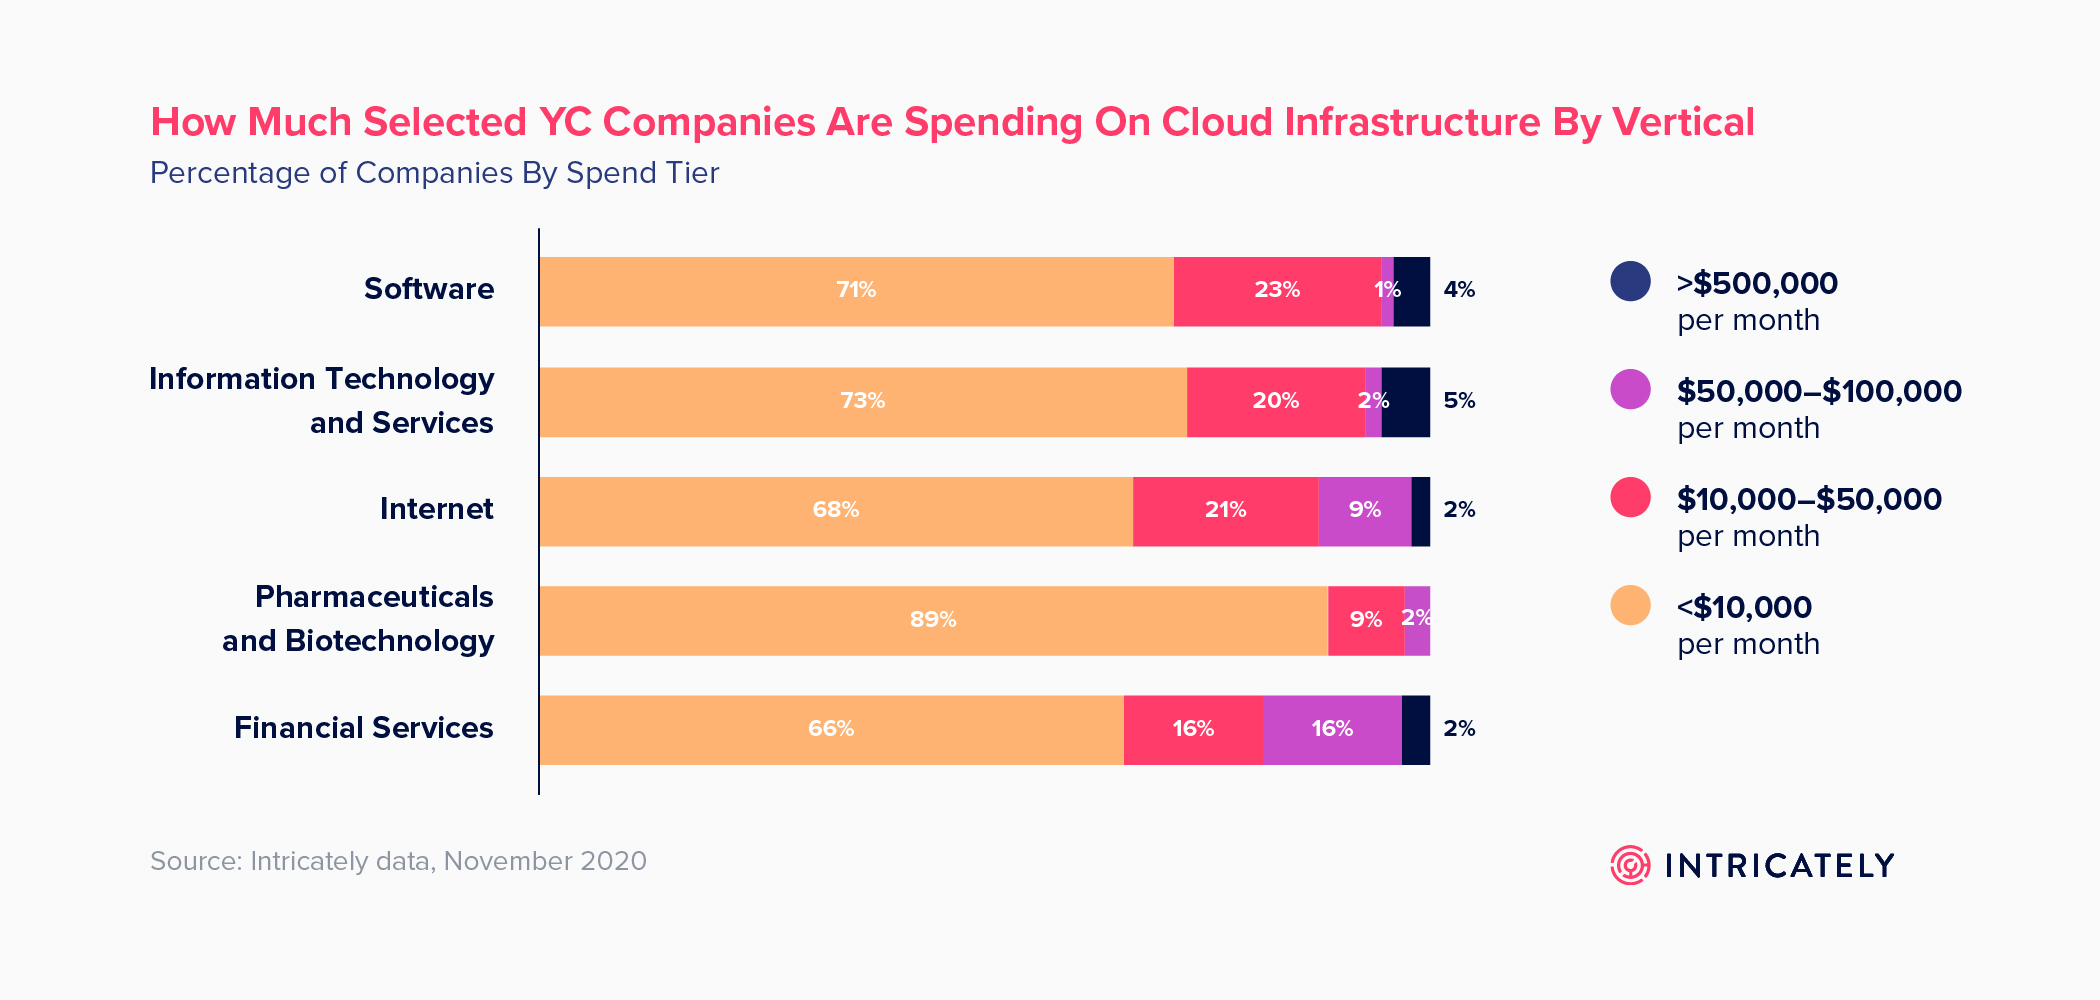 How much YC Companies are spending on cloud infrastructure